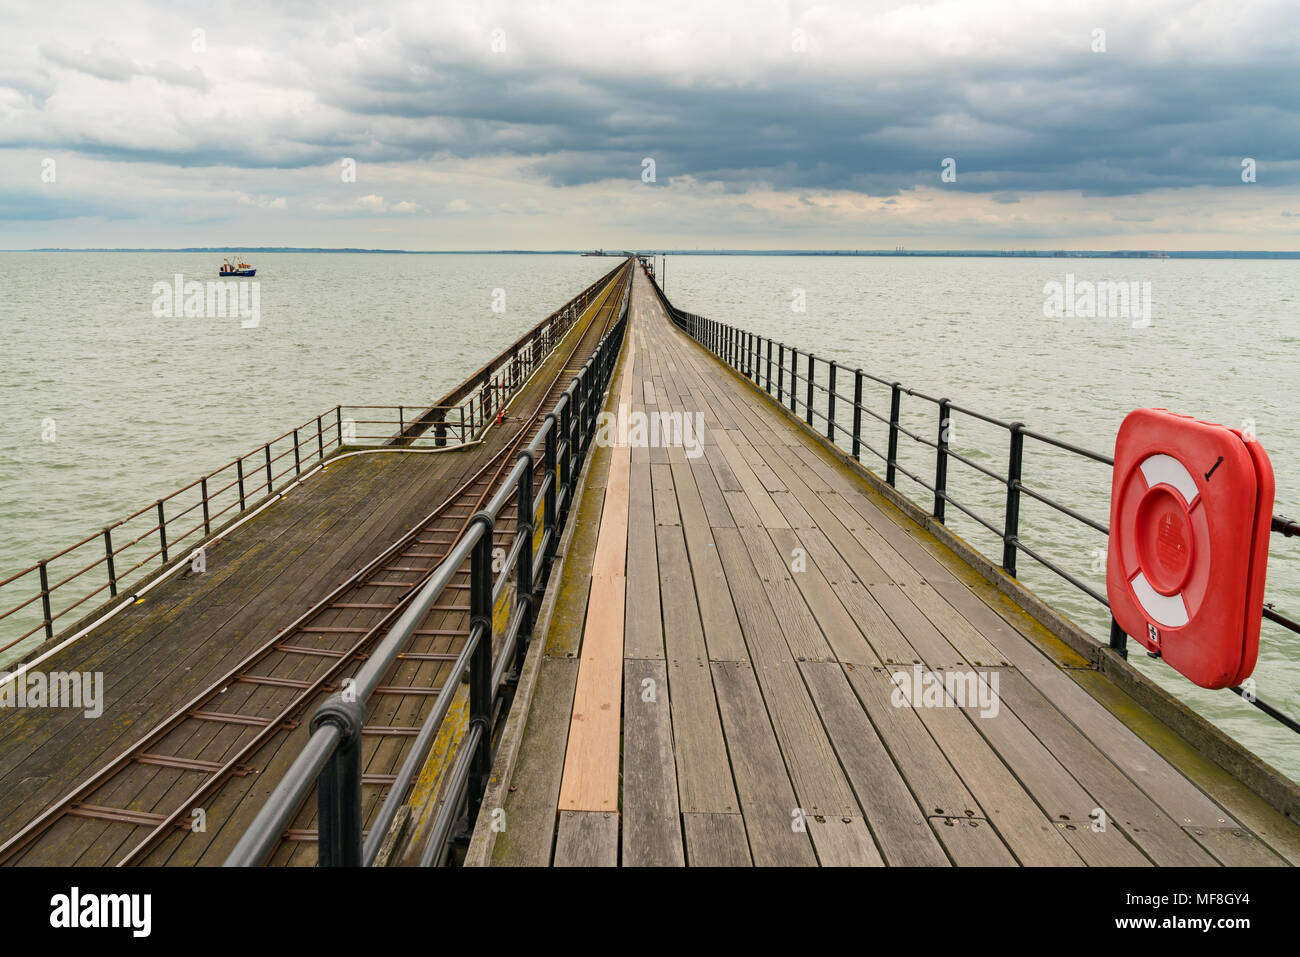 Southend-on-Sea, Essex, England, UK - May 30, 2017: View at Southend Pier (longest pleasure pier in the world) towards the Pier Head in the background - Stock Image